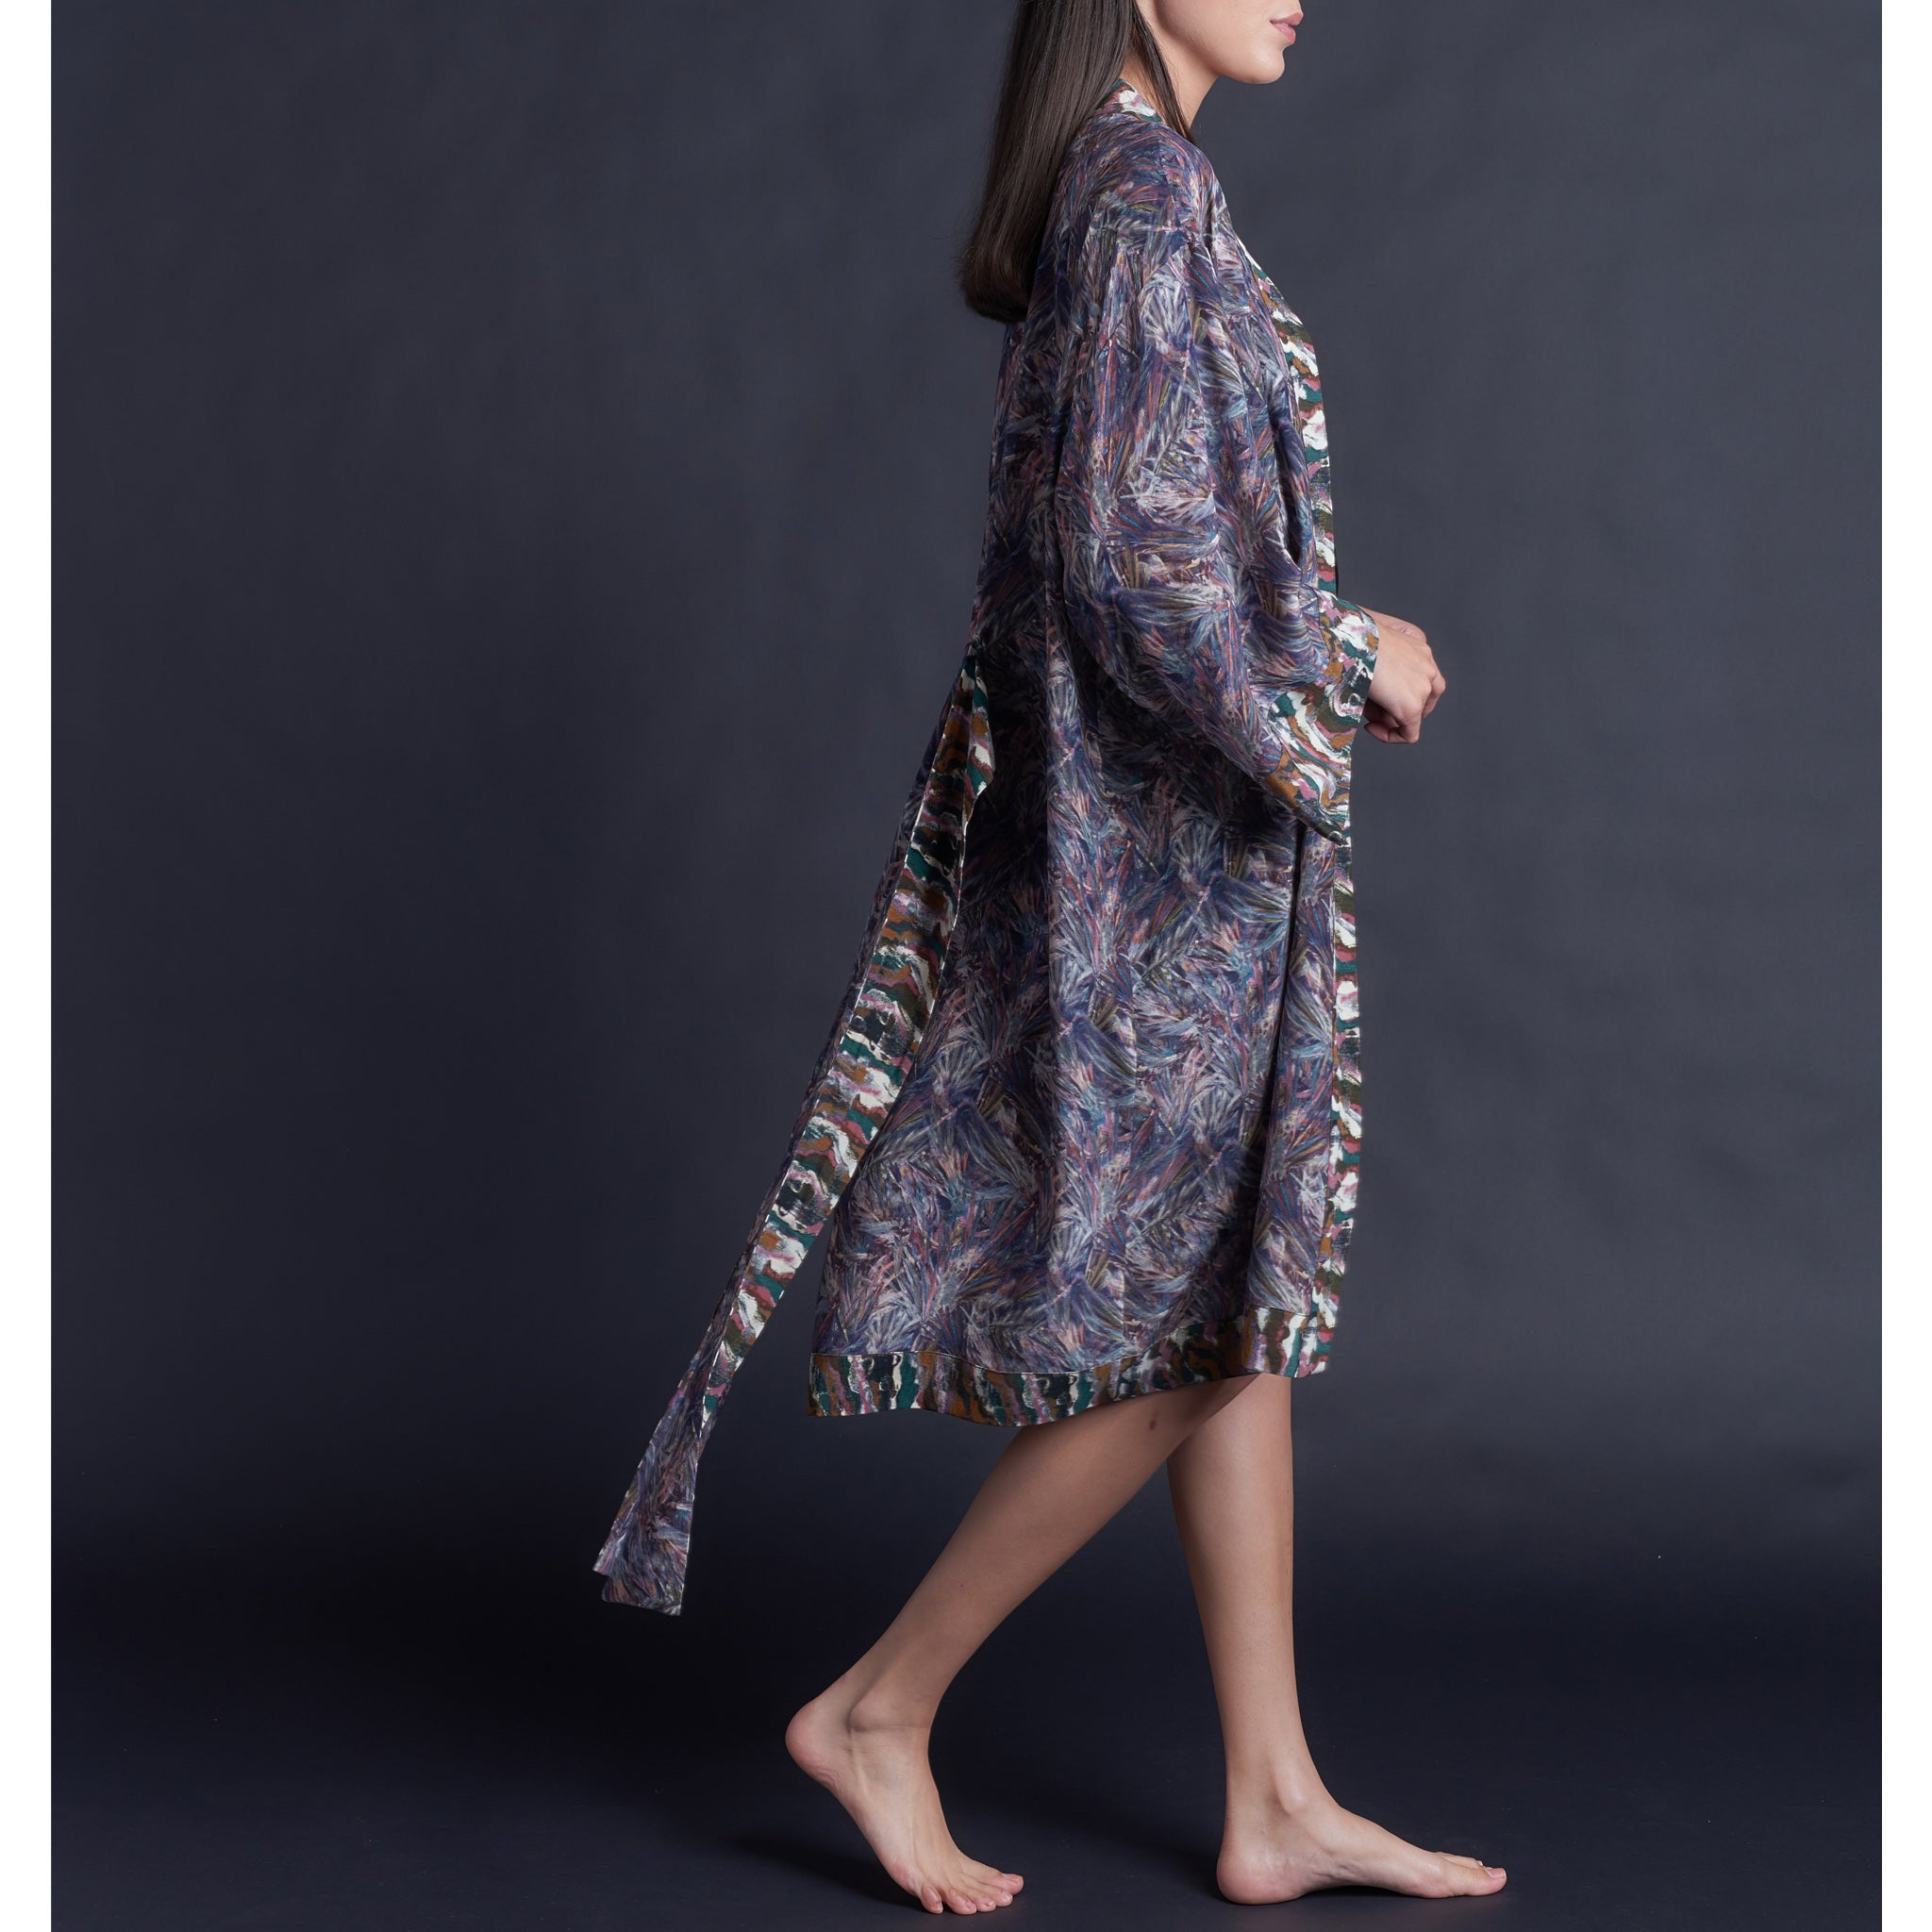 One of Kind Selene Dressing Gown in Print Block Saxby Liberty Silk Crepe De Chine